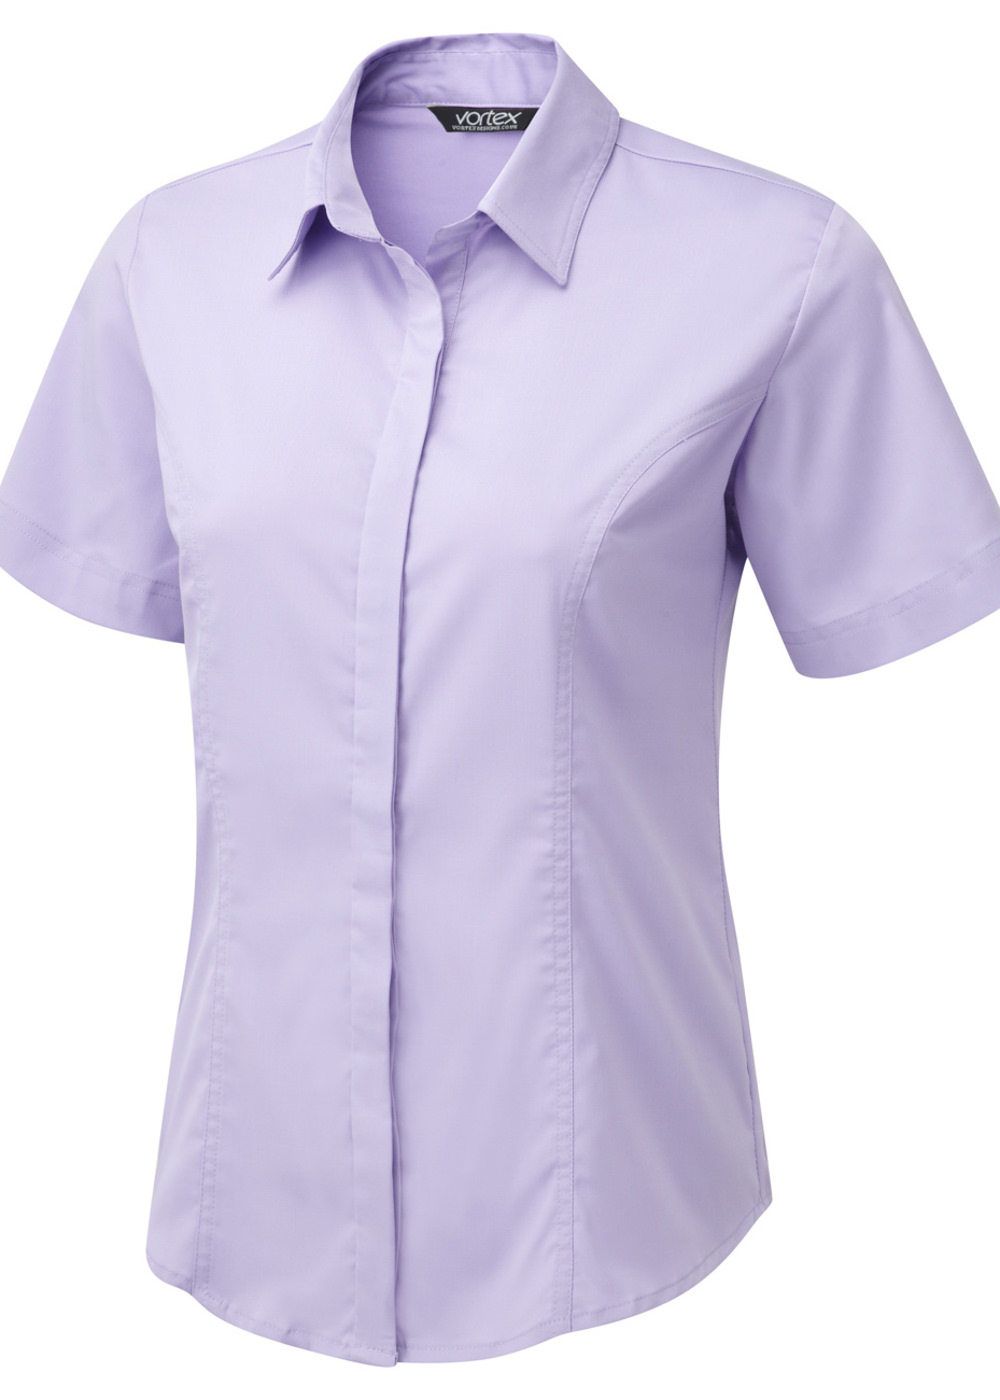 ZOE SS - Shirt style Cotton Touch Stretch blouse